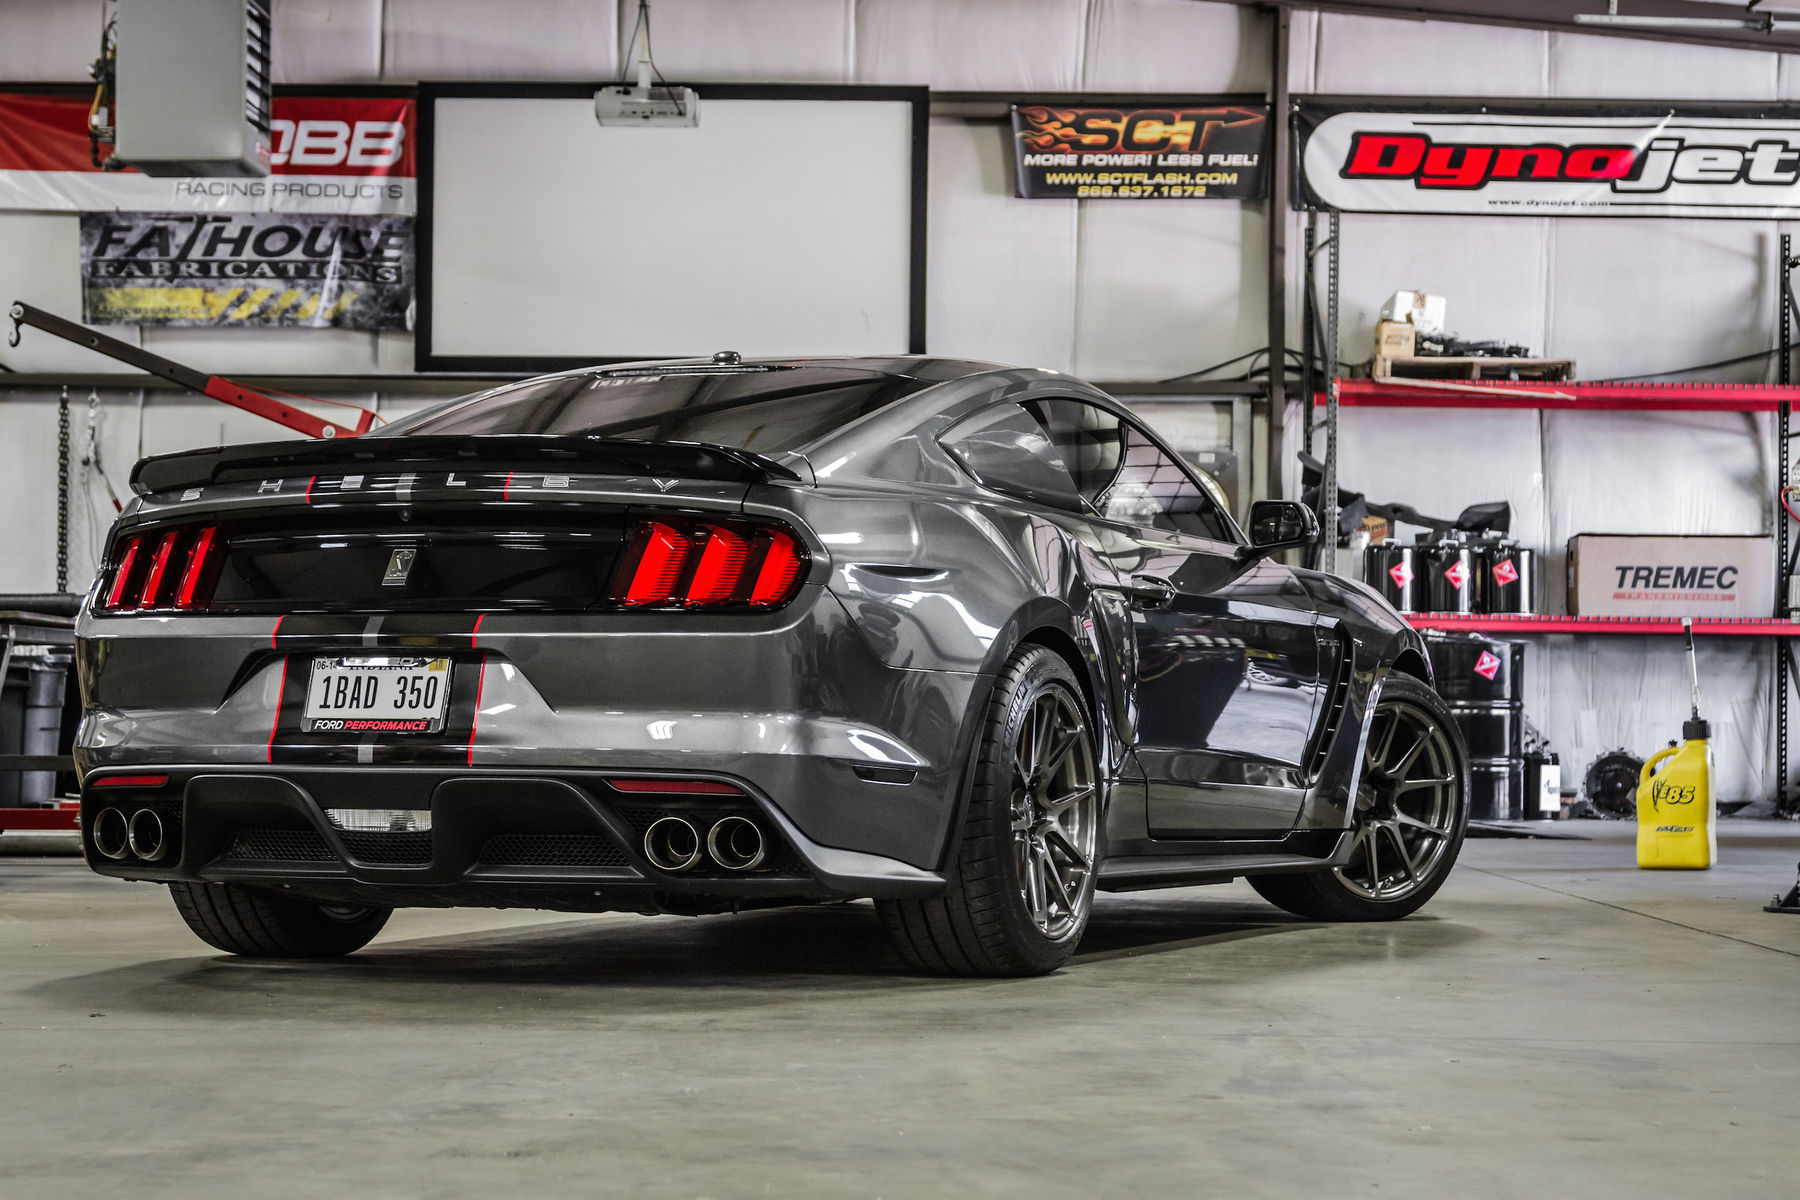 2016 Ford GT350   Tony Janko's 1056RWHP Mustang GT350 on Forgeline One Piece Forged Monoblock GA1R Open Lug Wheels